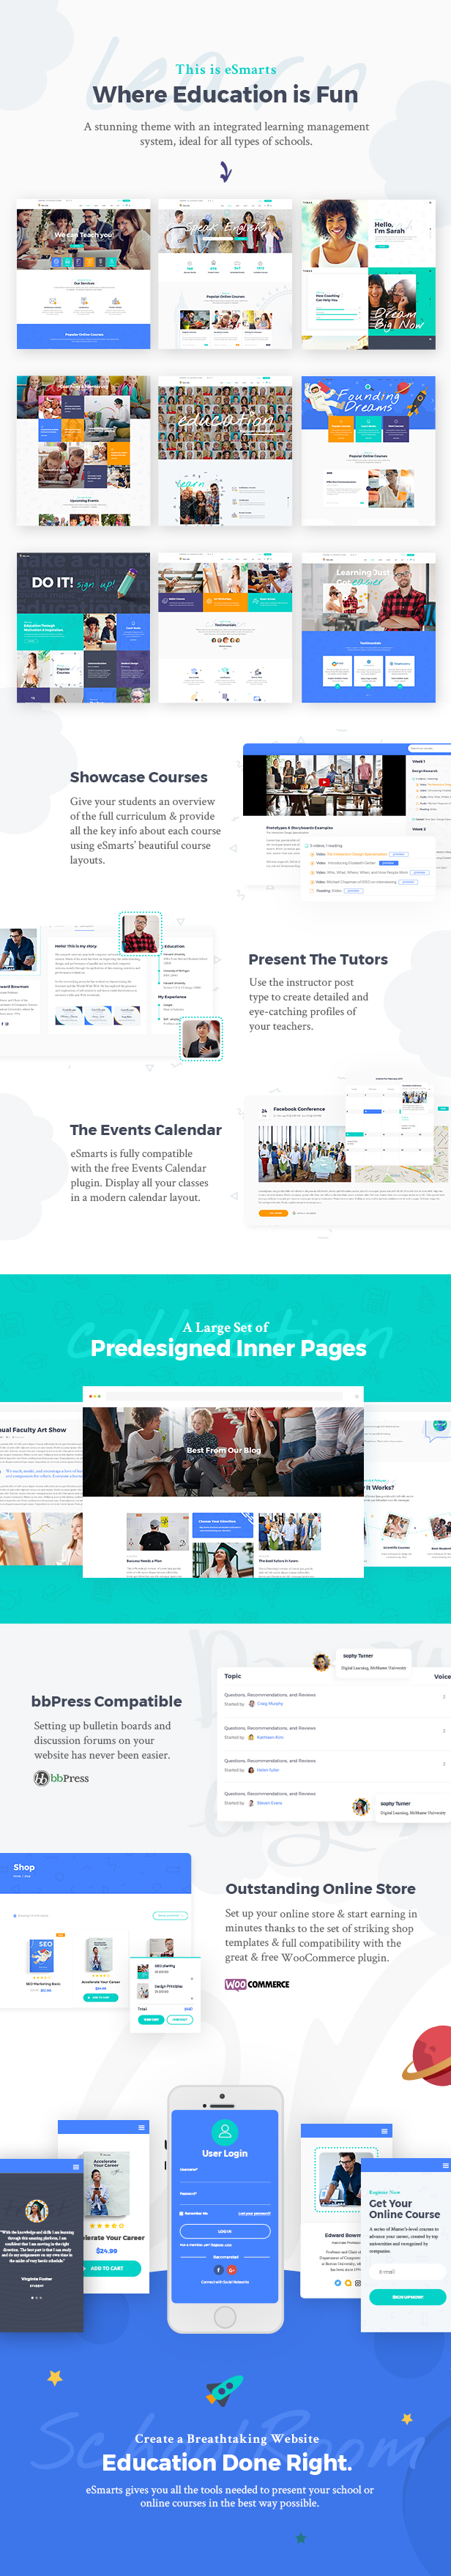 WordPress theme eSmarts - A Modern Education and LMS Theme (Education)